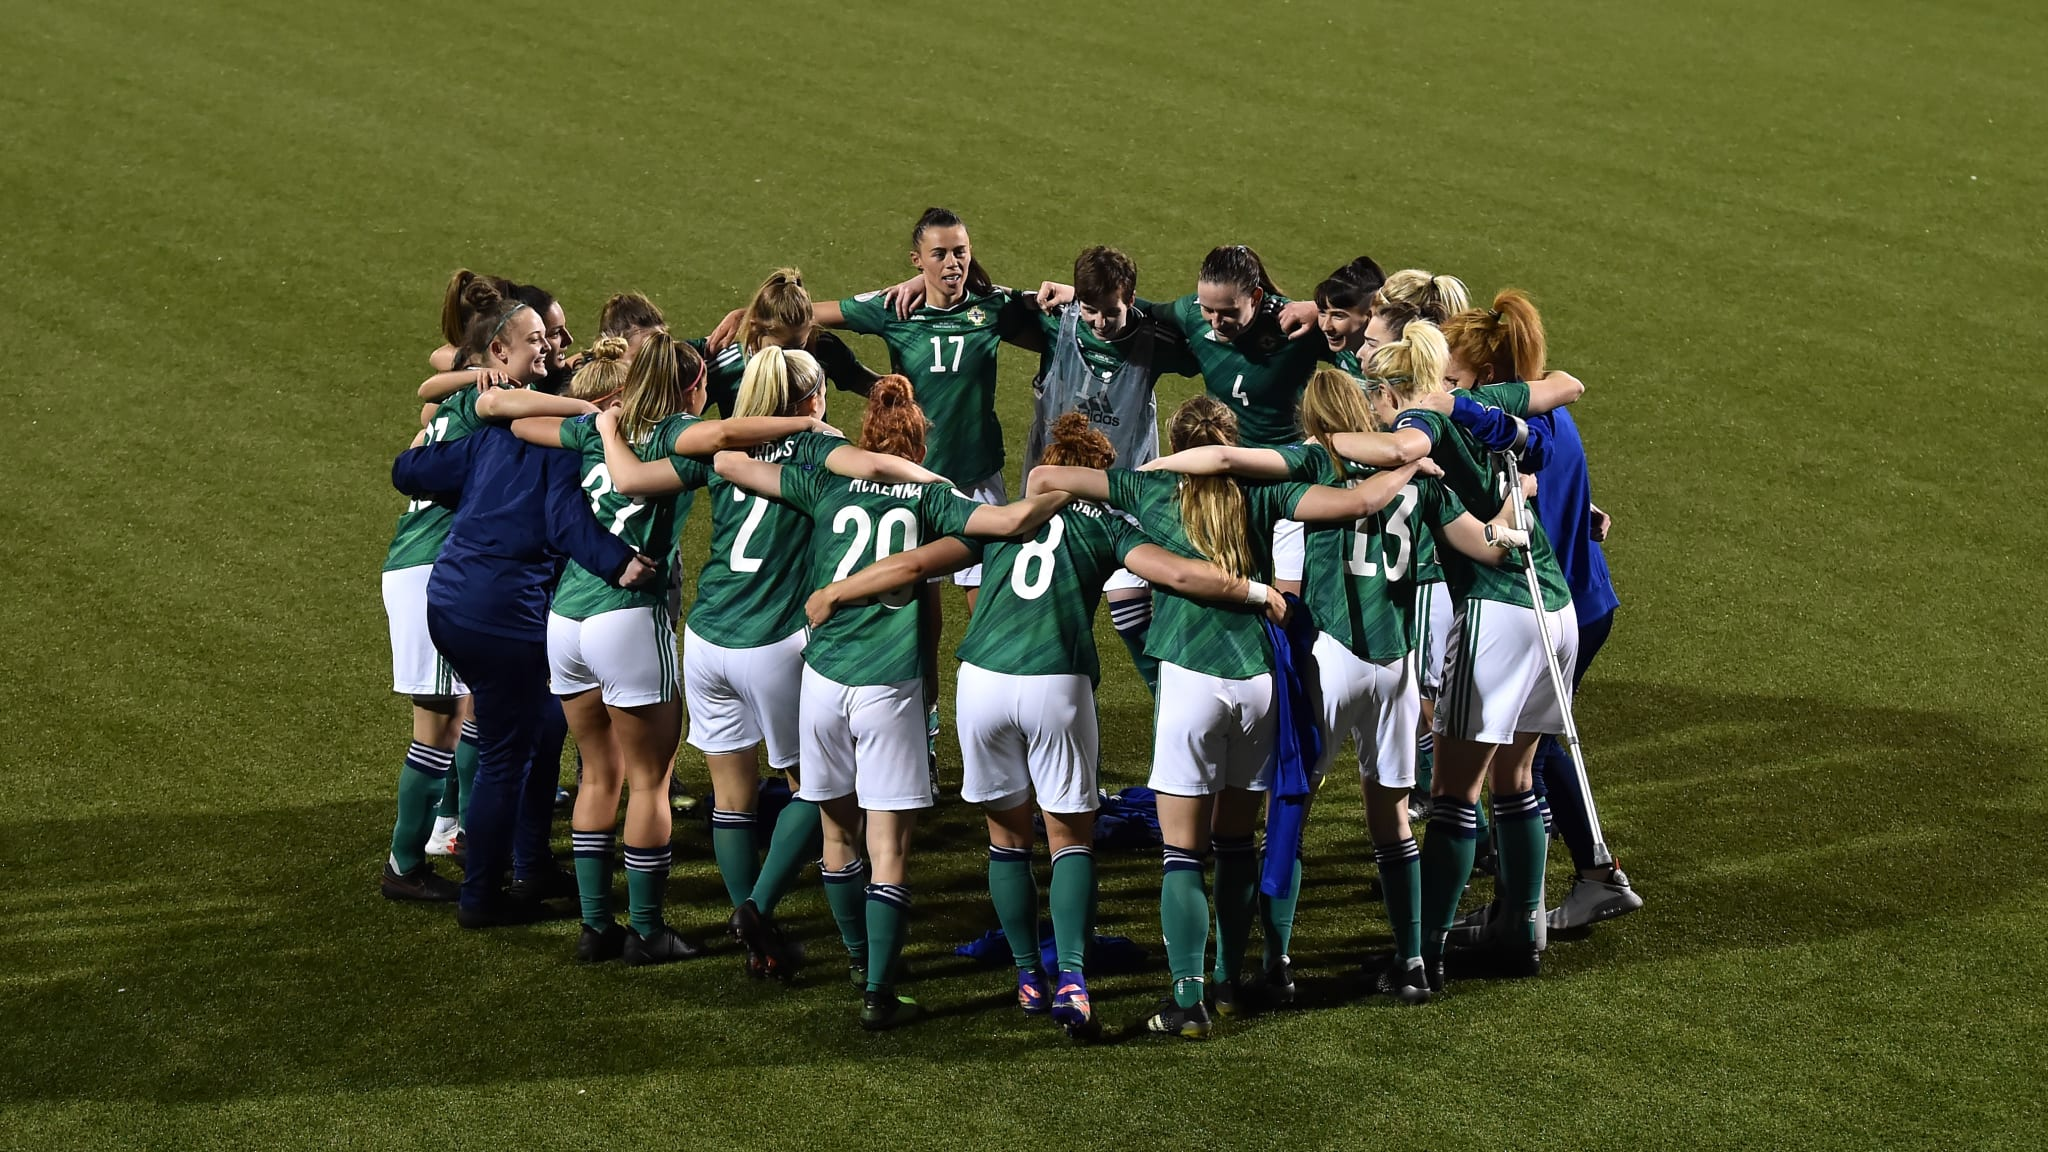 Northern Ireland players huddle on pitch, celebrating victory in the UEFA Women's Euro 2022 Play-off match between Northern Ireland and Ukraine at Seaview on April 13, 2021 in Belfast, Northern Ireland.